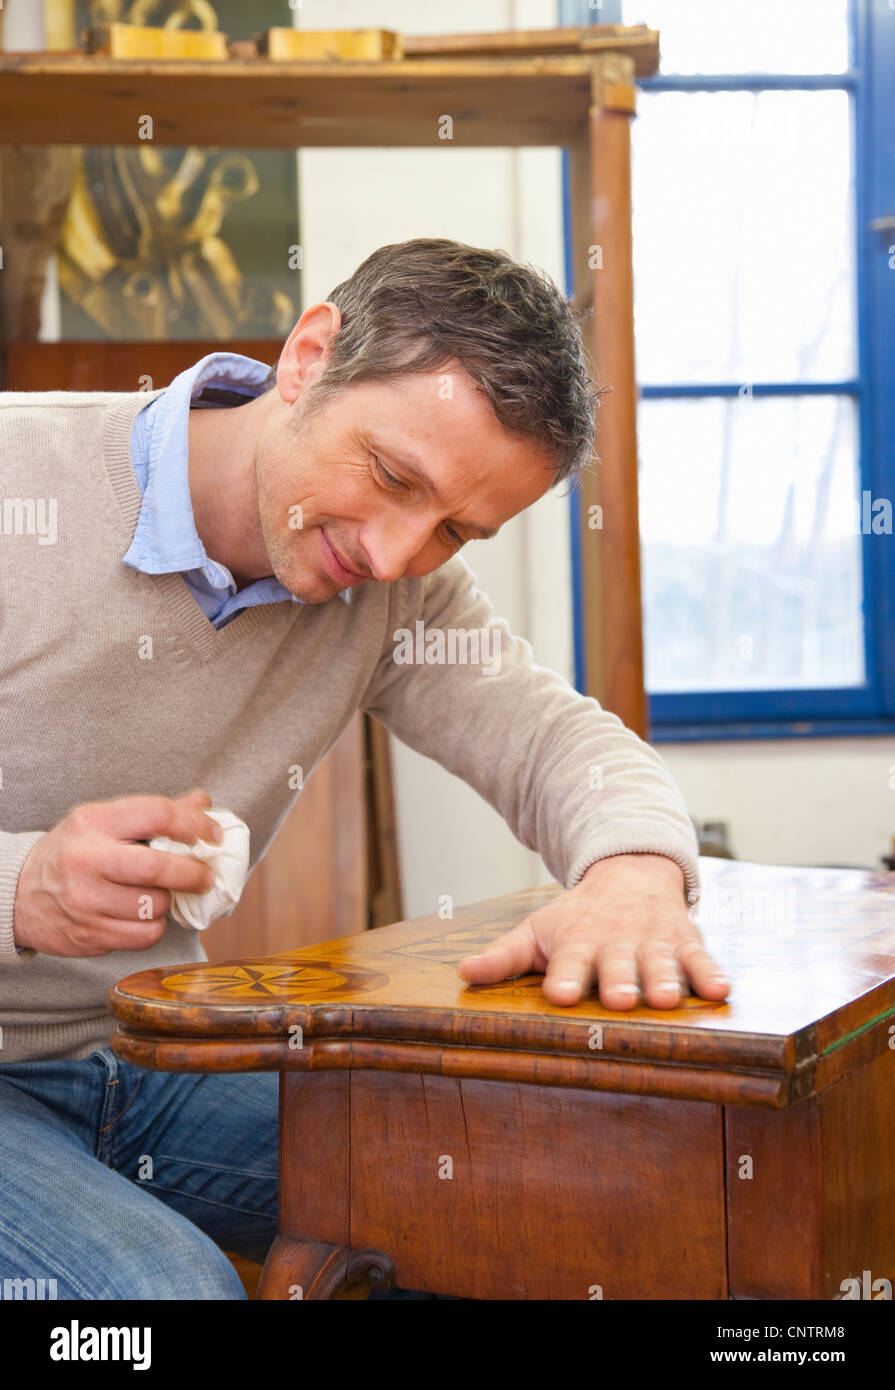 Carpenter buffing wooden table Stock Photo